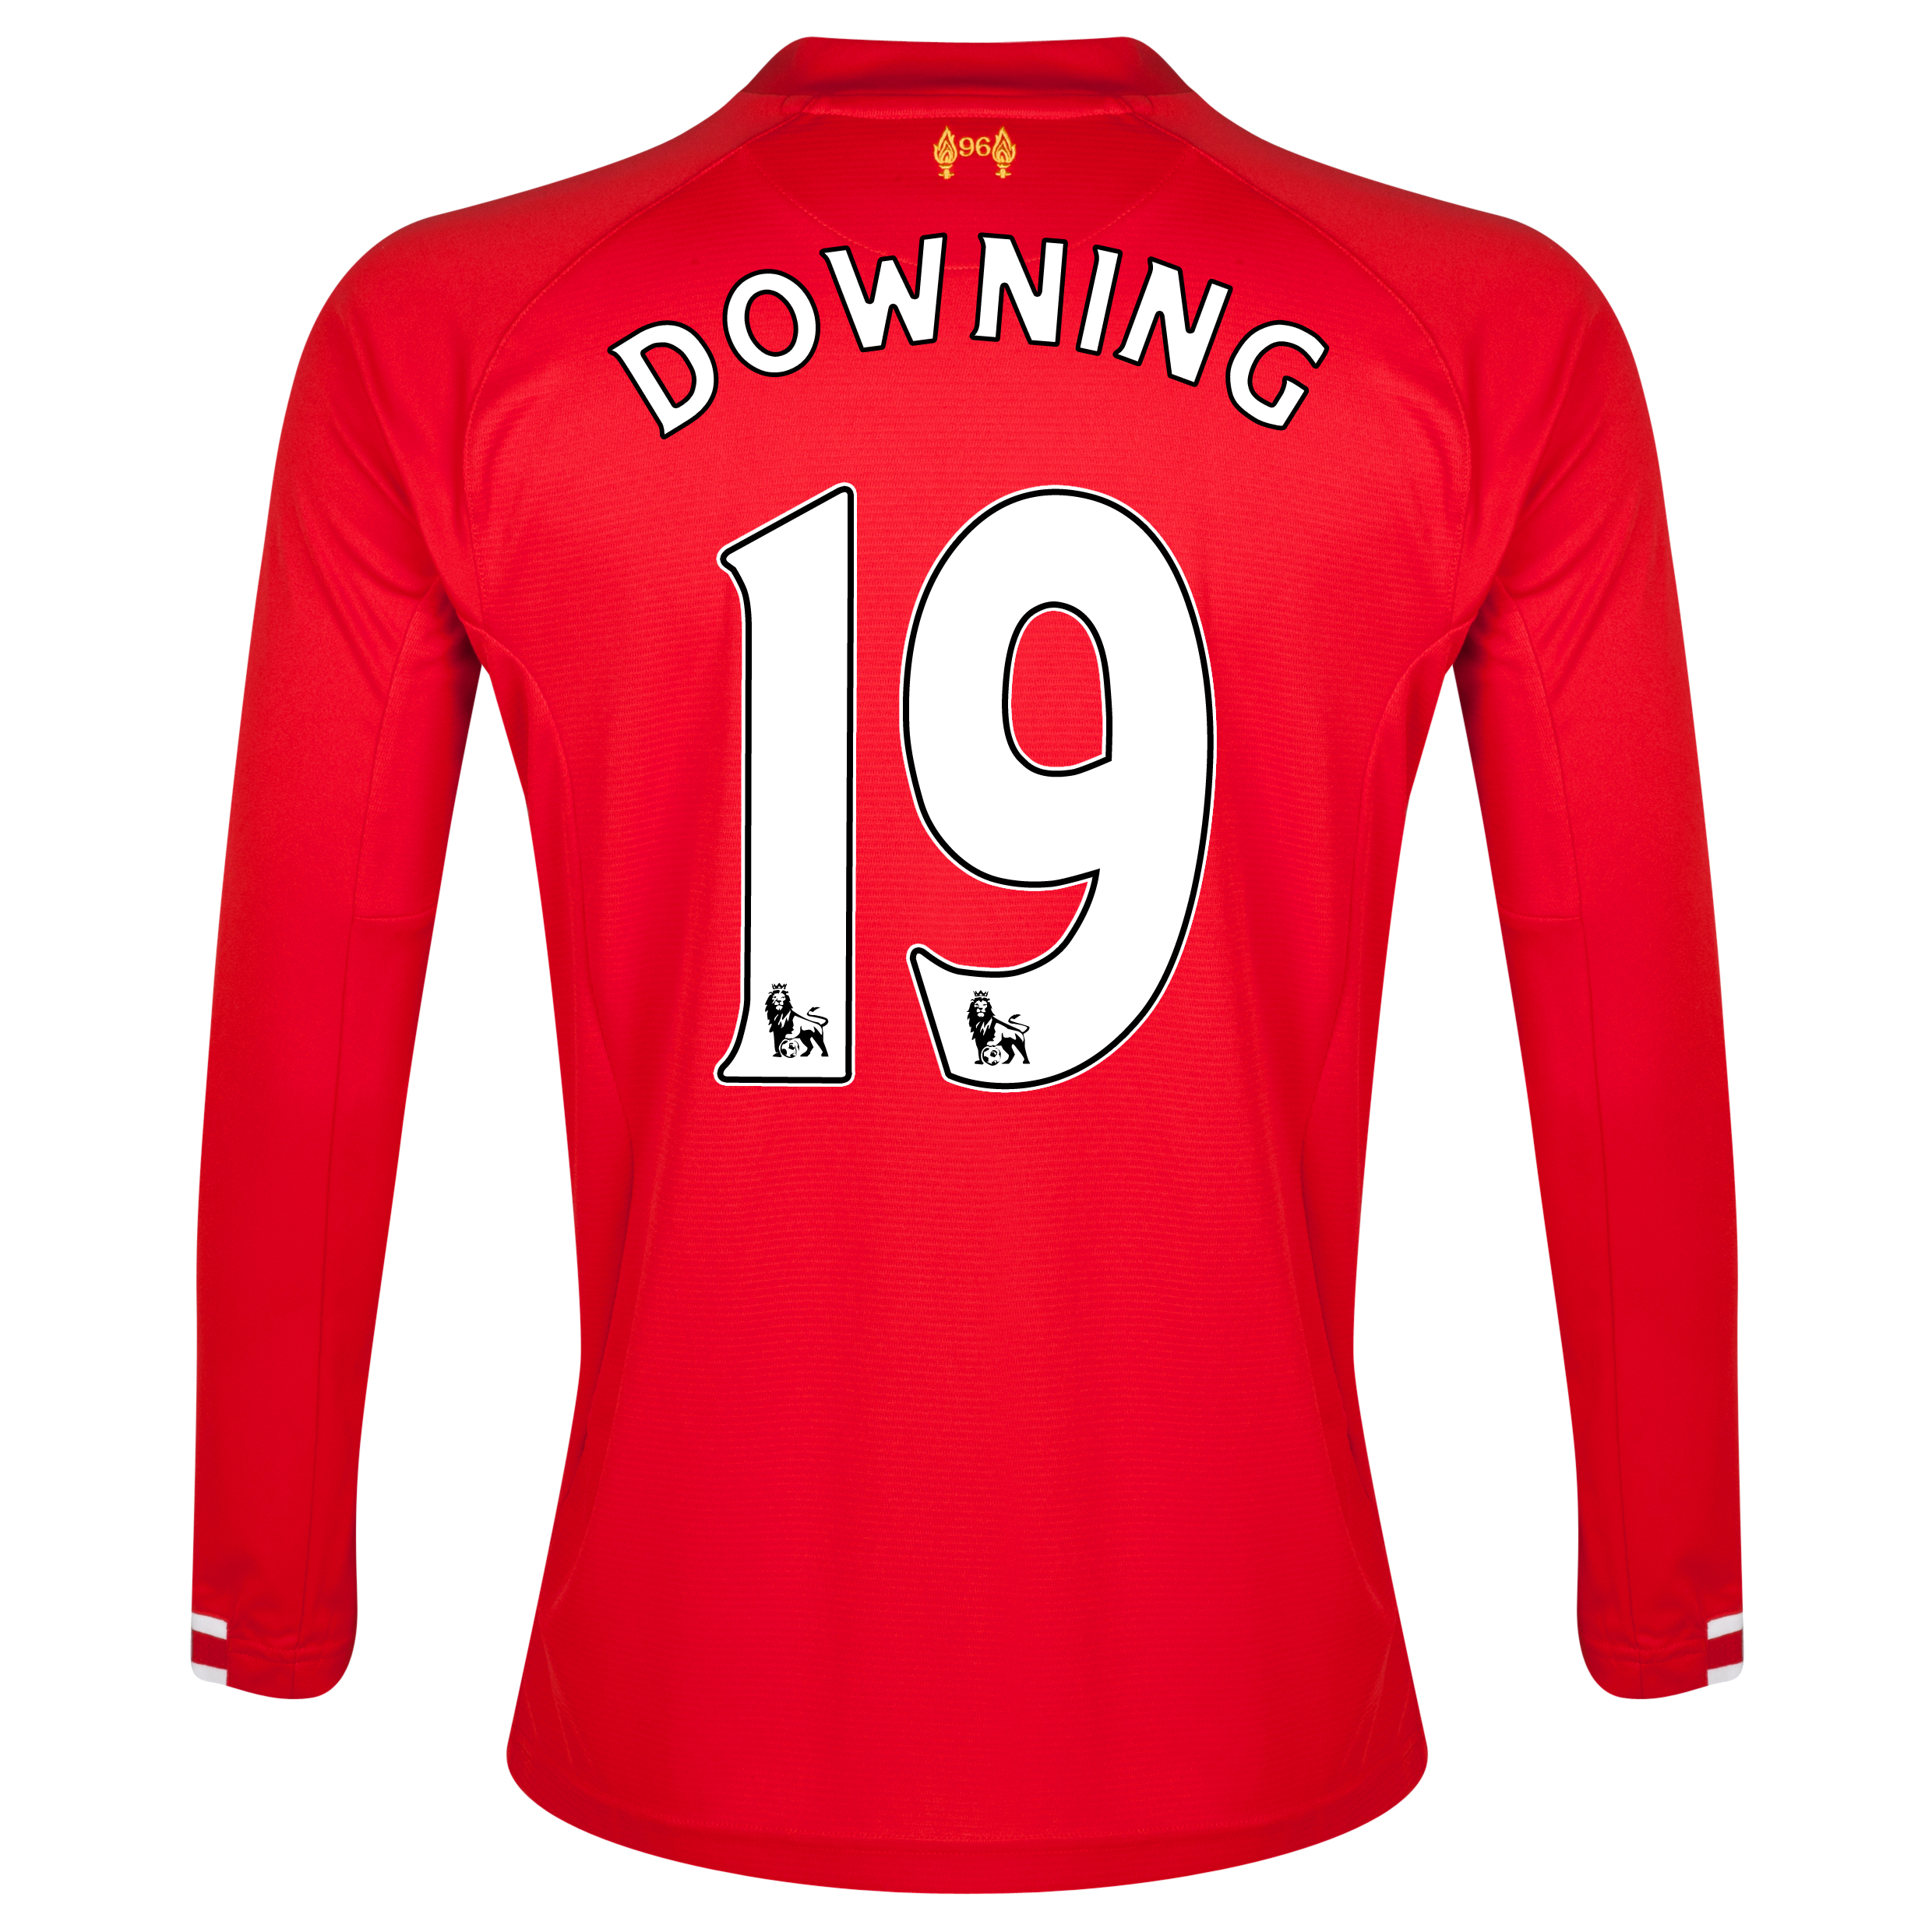 Liverpool Home Shirt 2013/14 - Long Sleeve - Kids with Downing 19 printing